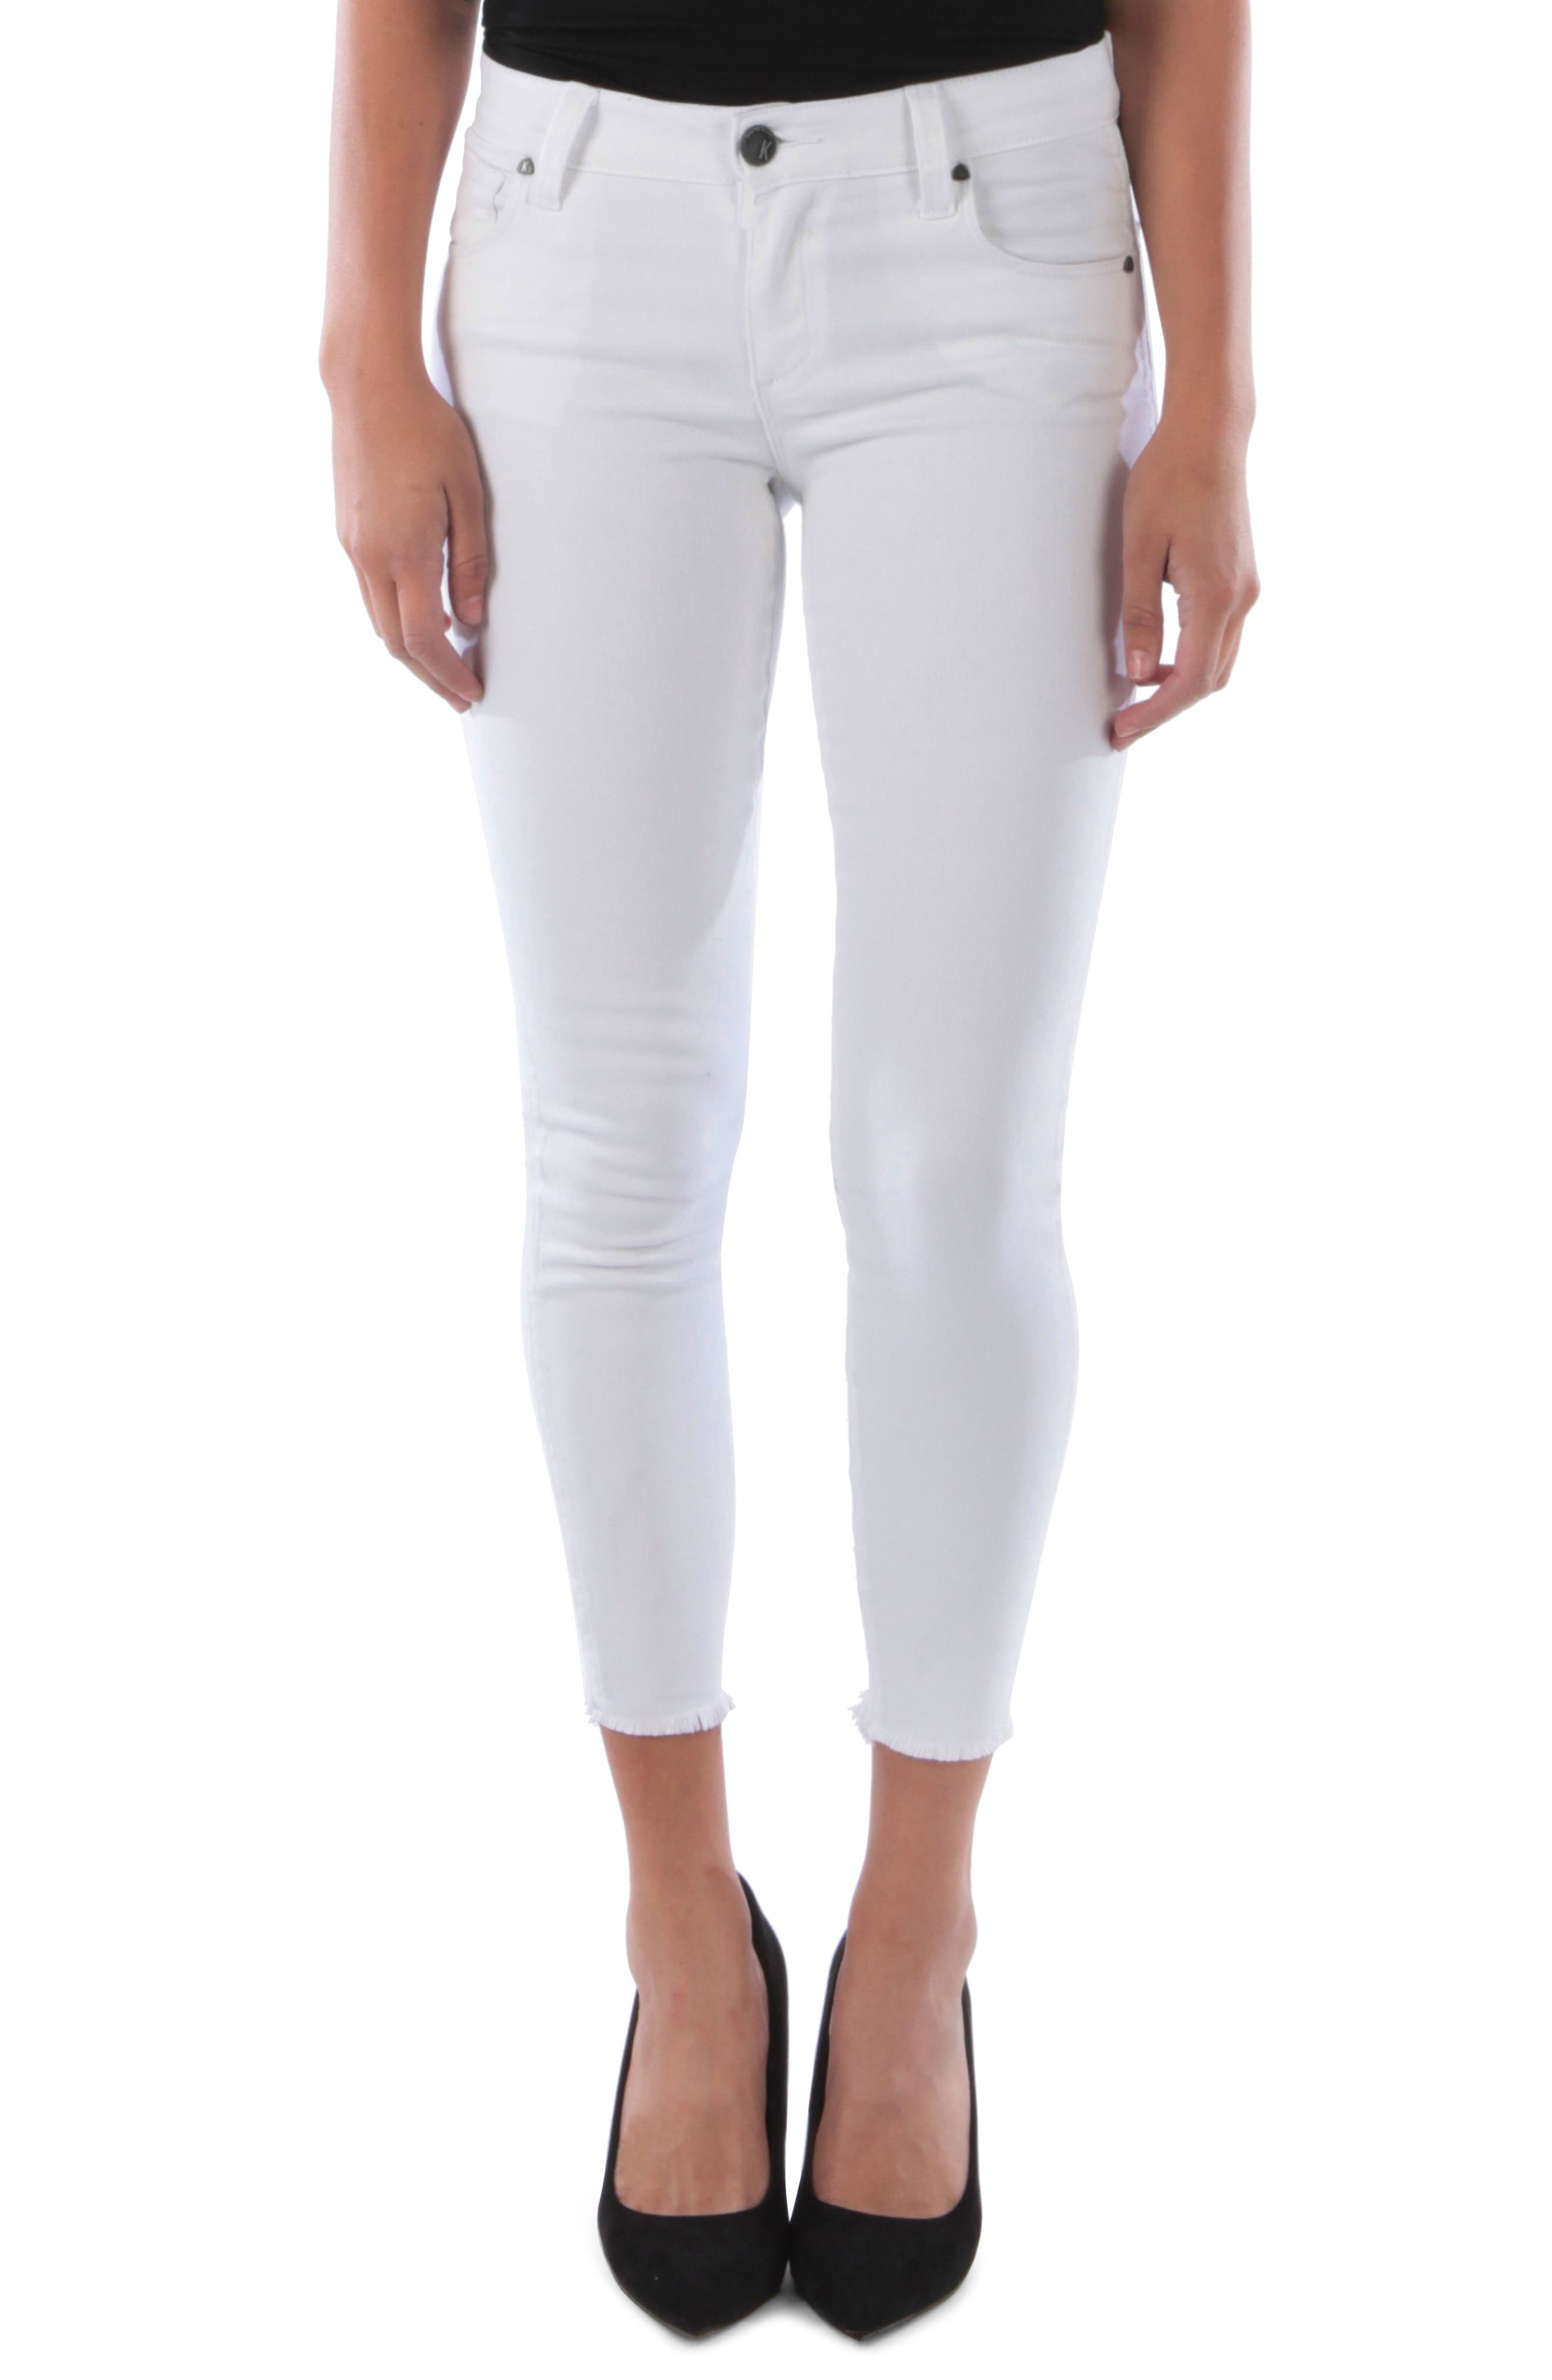 KUT FROM THE KLOTH Connie Frayed Ankle Skinny Jeans, Main, color, OPTICAL WHITE